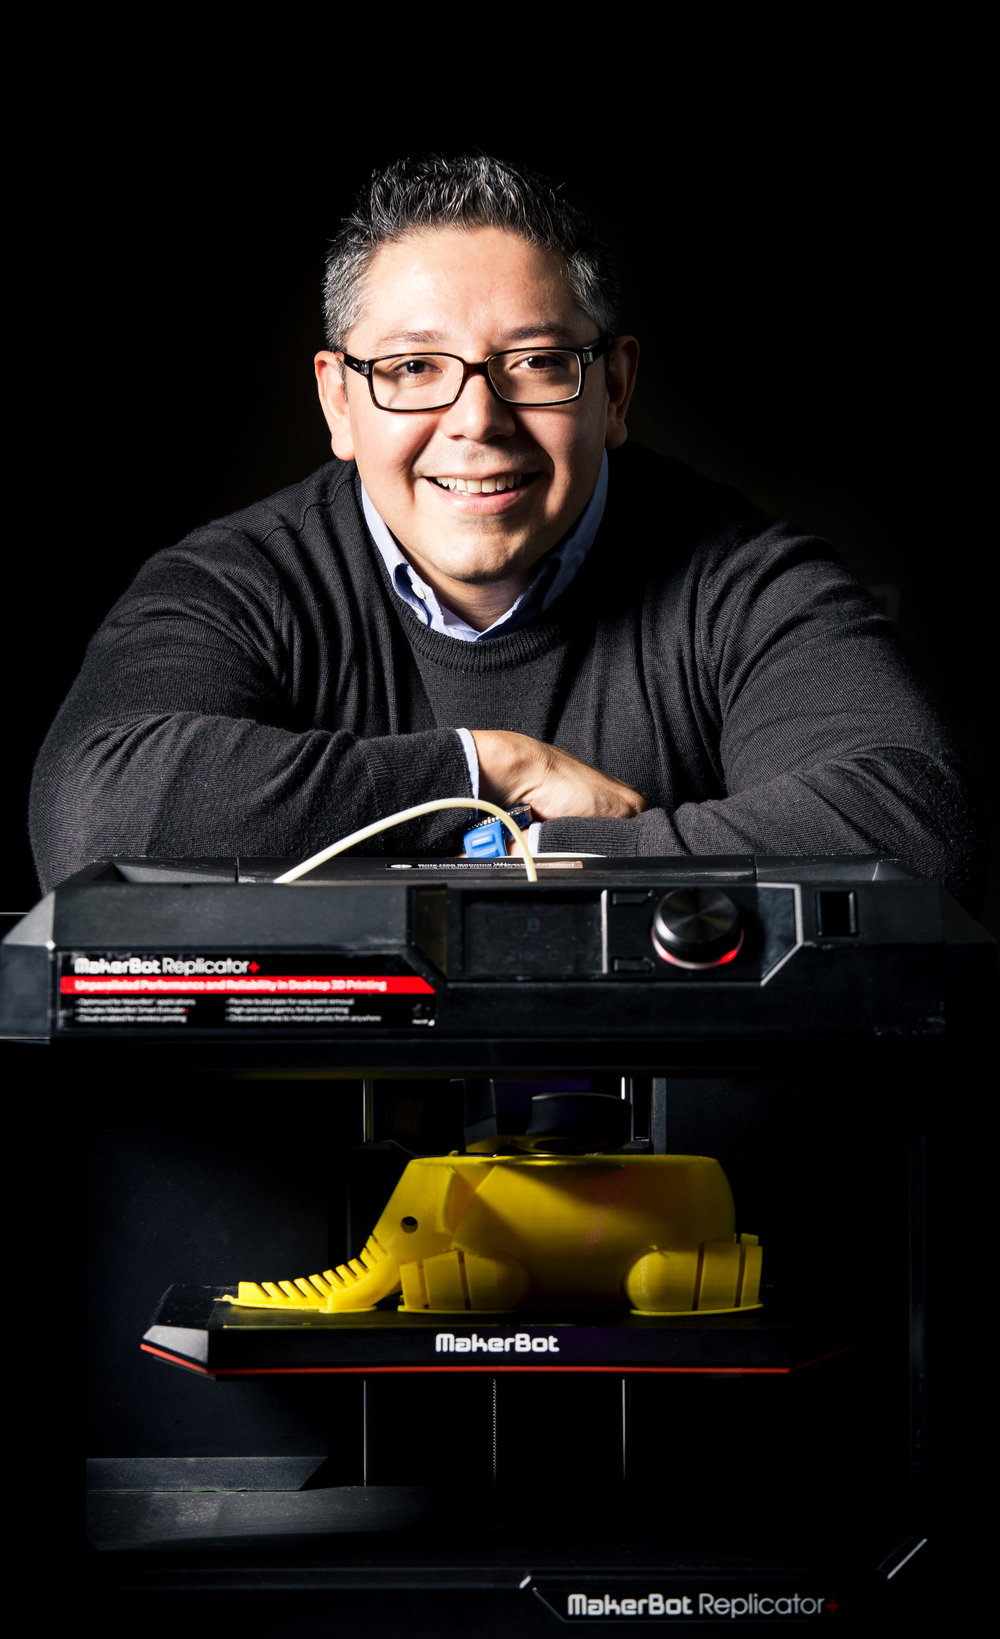 Felipe Rosales, Director General de MakerBot en Latinoamérica.